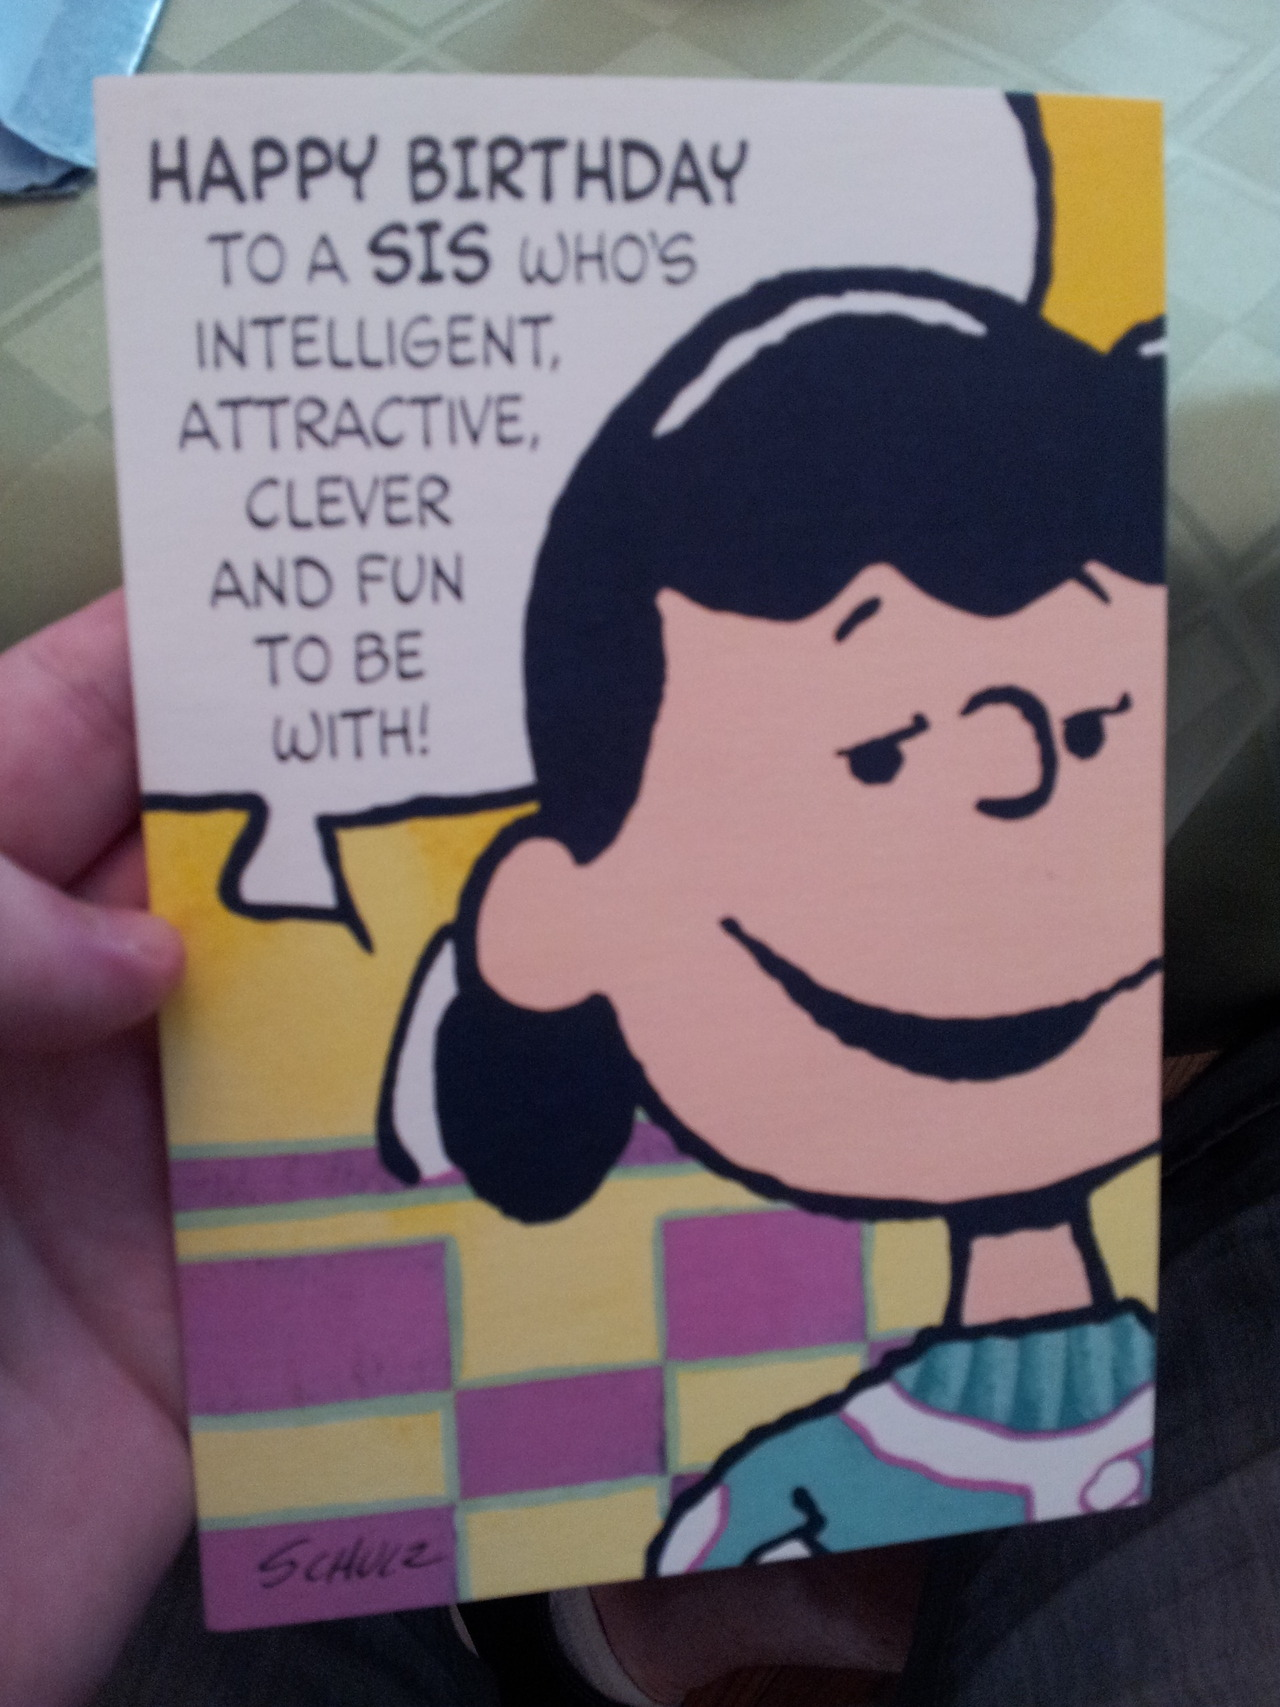 lulz-time:  probablyharrison: my grandma and great aunt have passed this card back and forth every birthday for almost 20 years This post has been featured on a 1000notes.com blog.